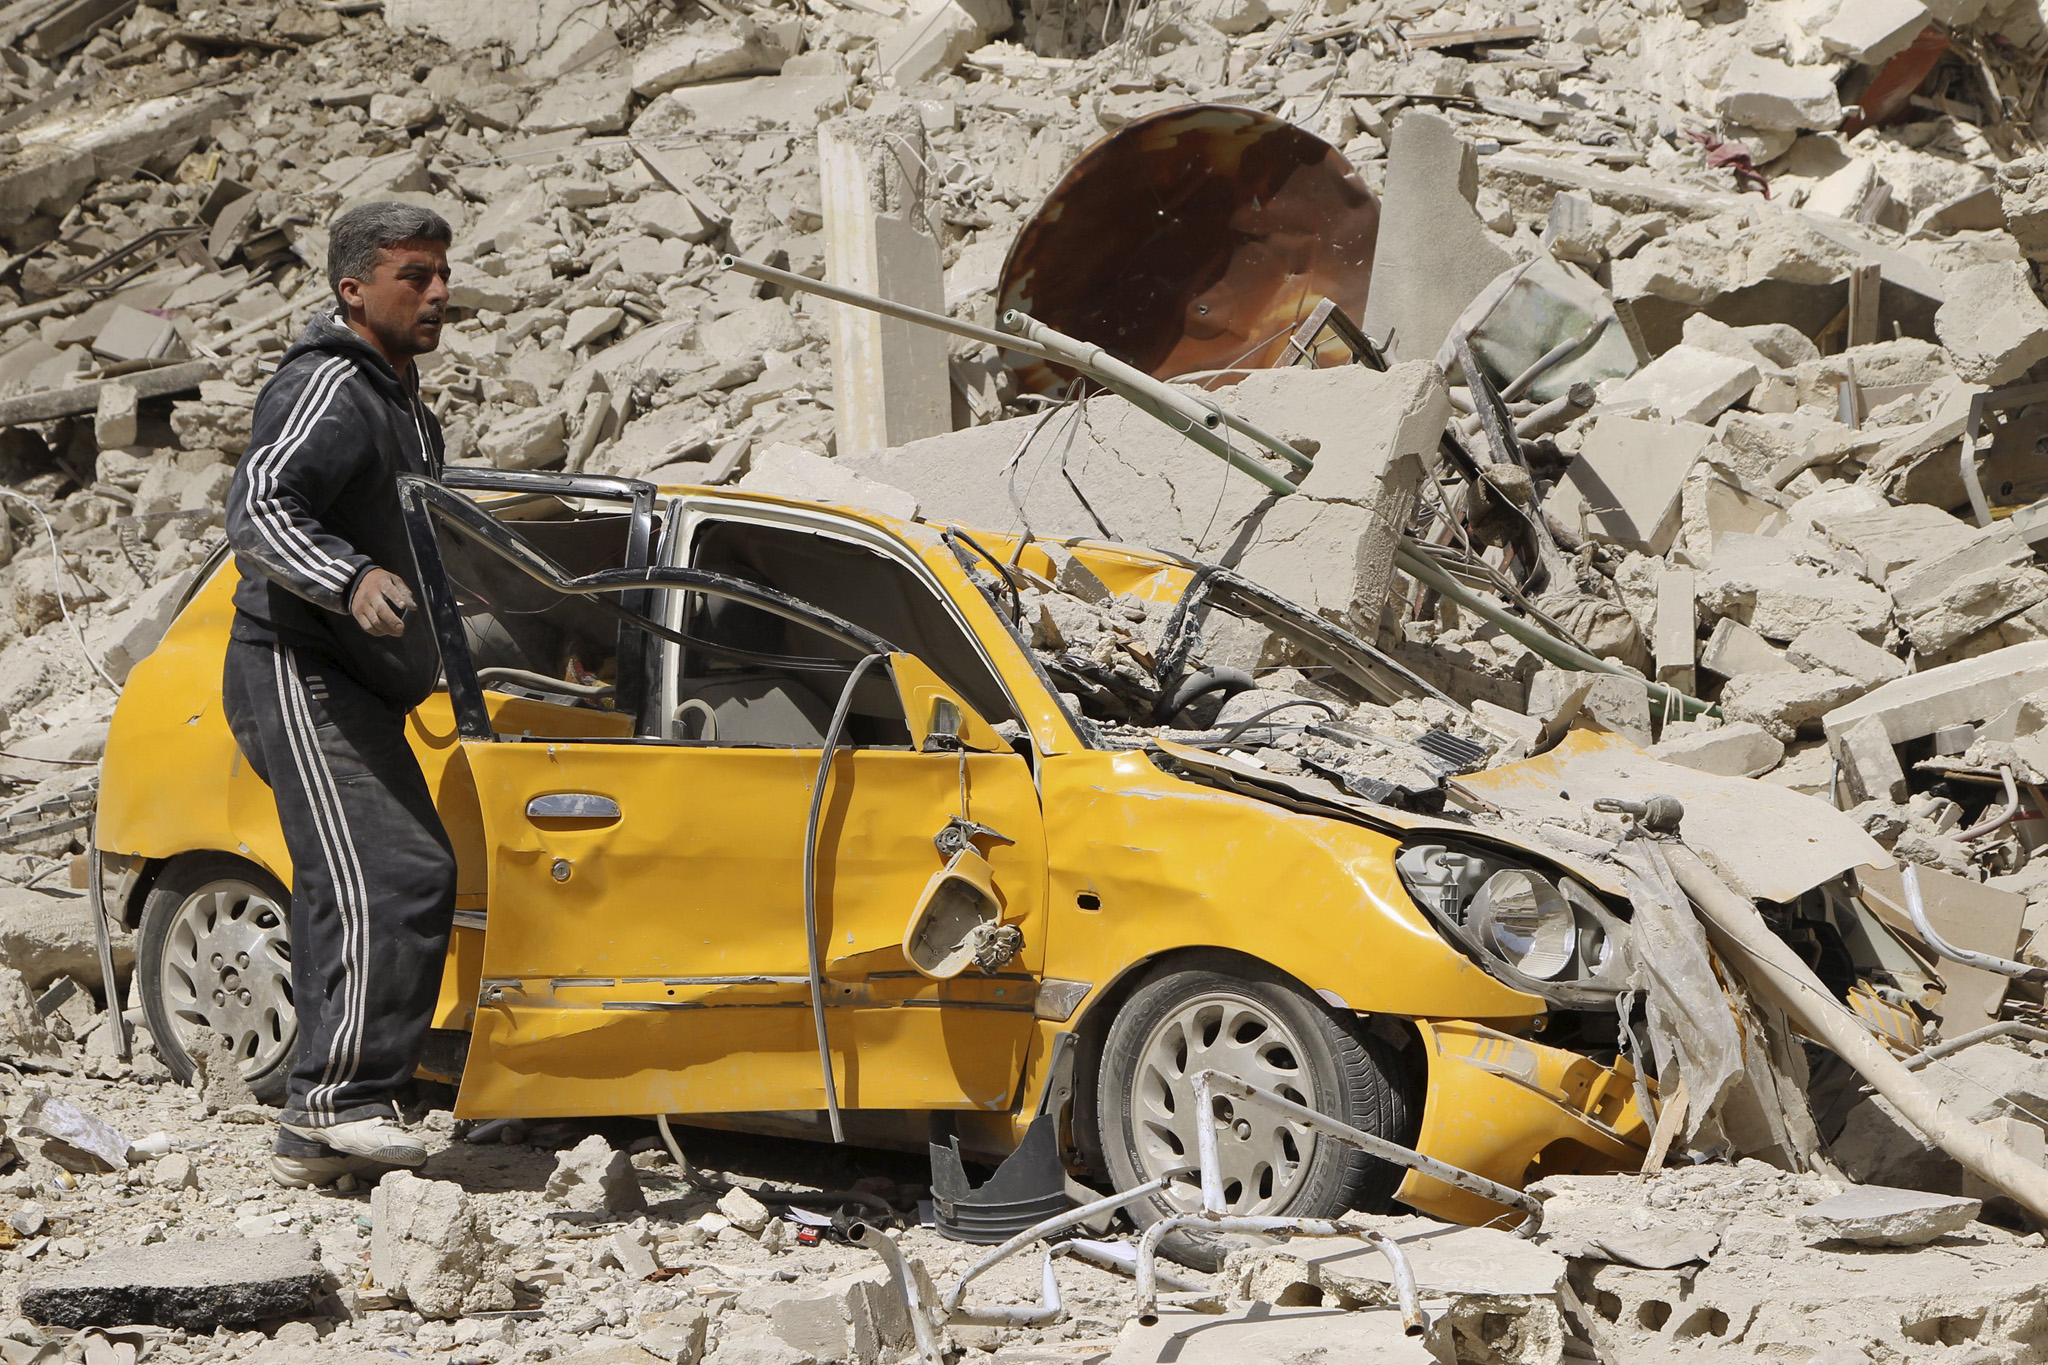 A man searches for belongings in a damaged car at a site hit by what activists said were barrel bombs dropped by forces of Syria's President Bashar al-Assad, at al-Thawra neighborhood in Idlib city today